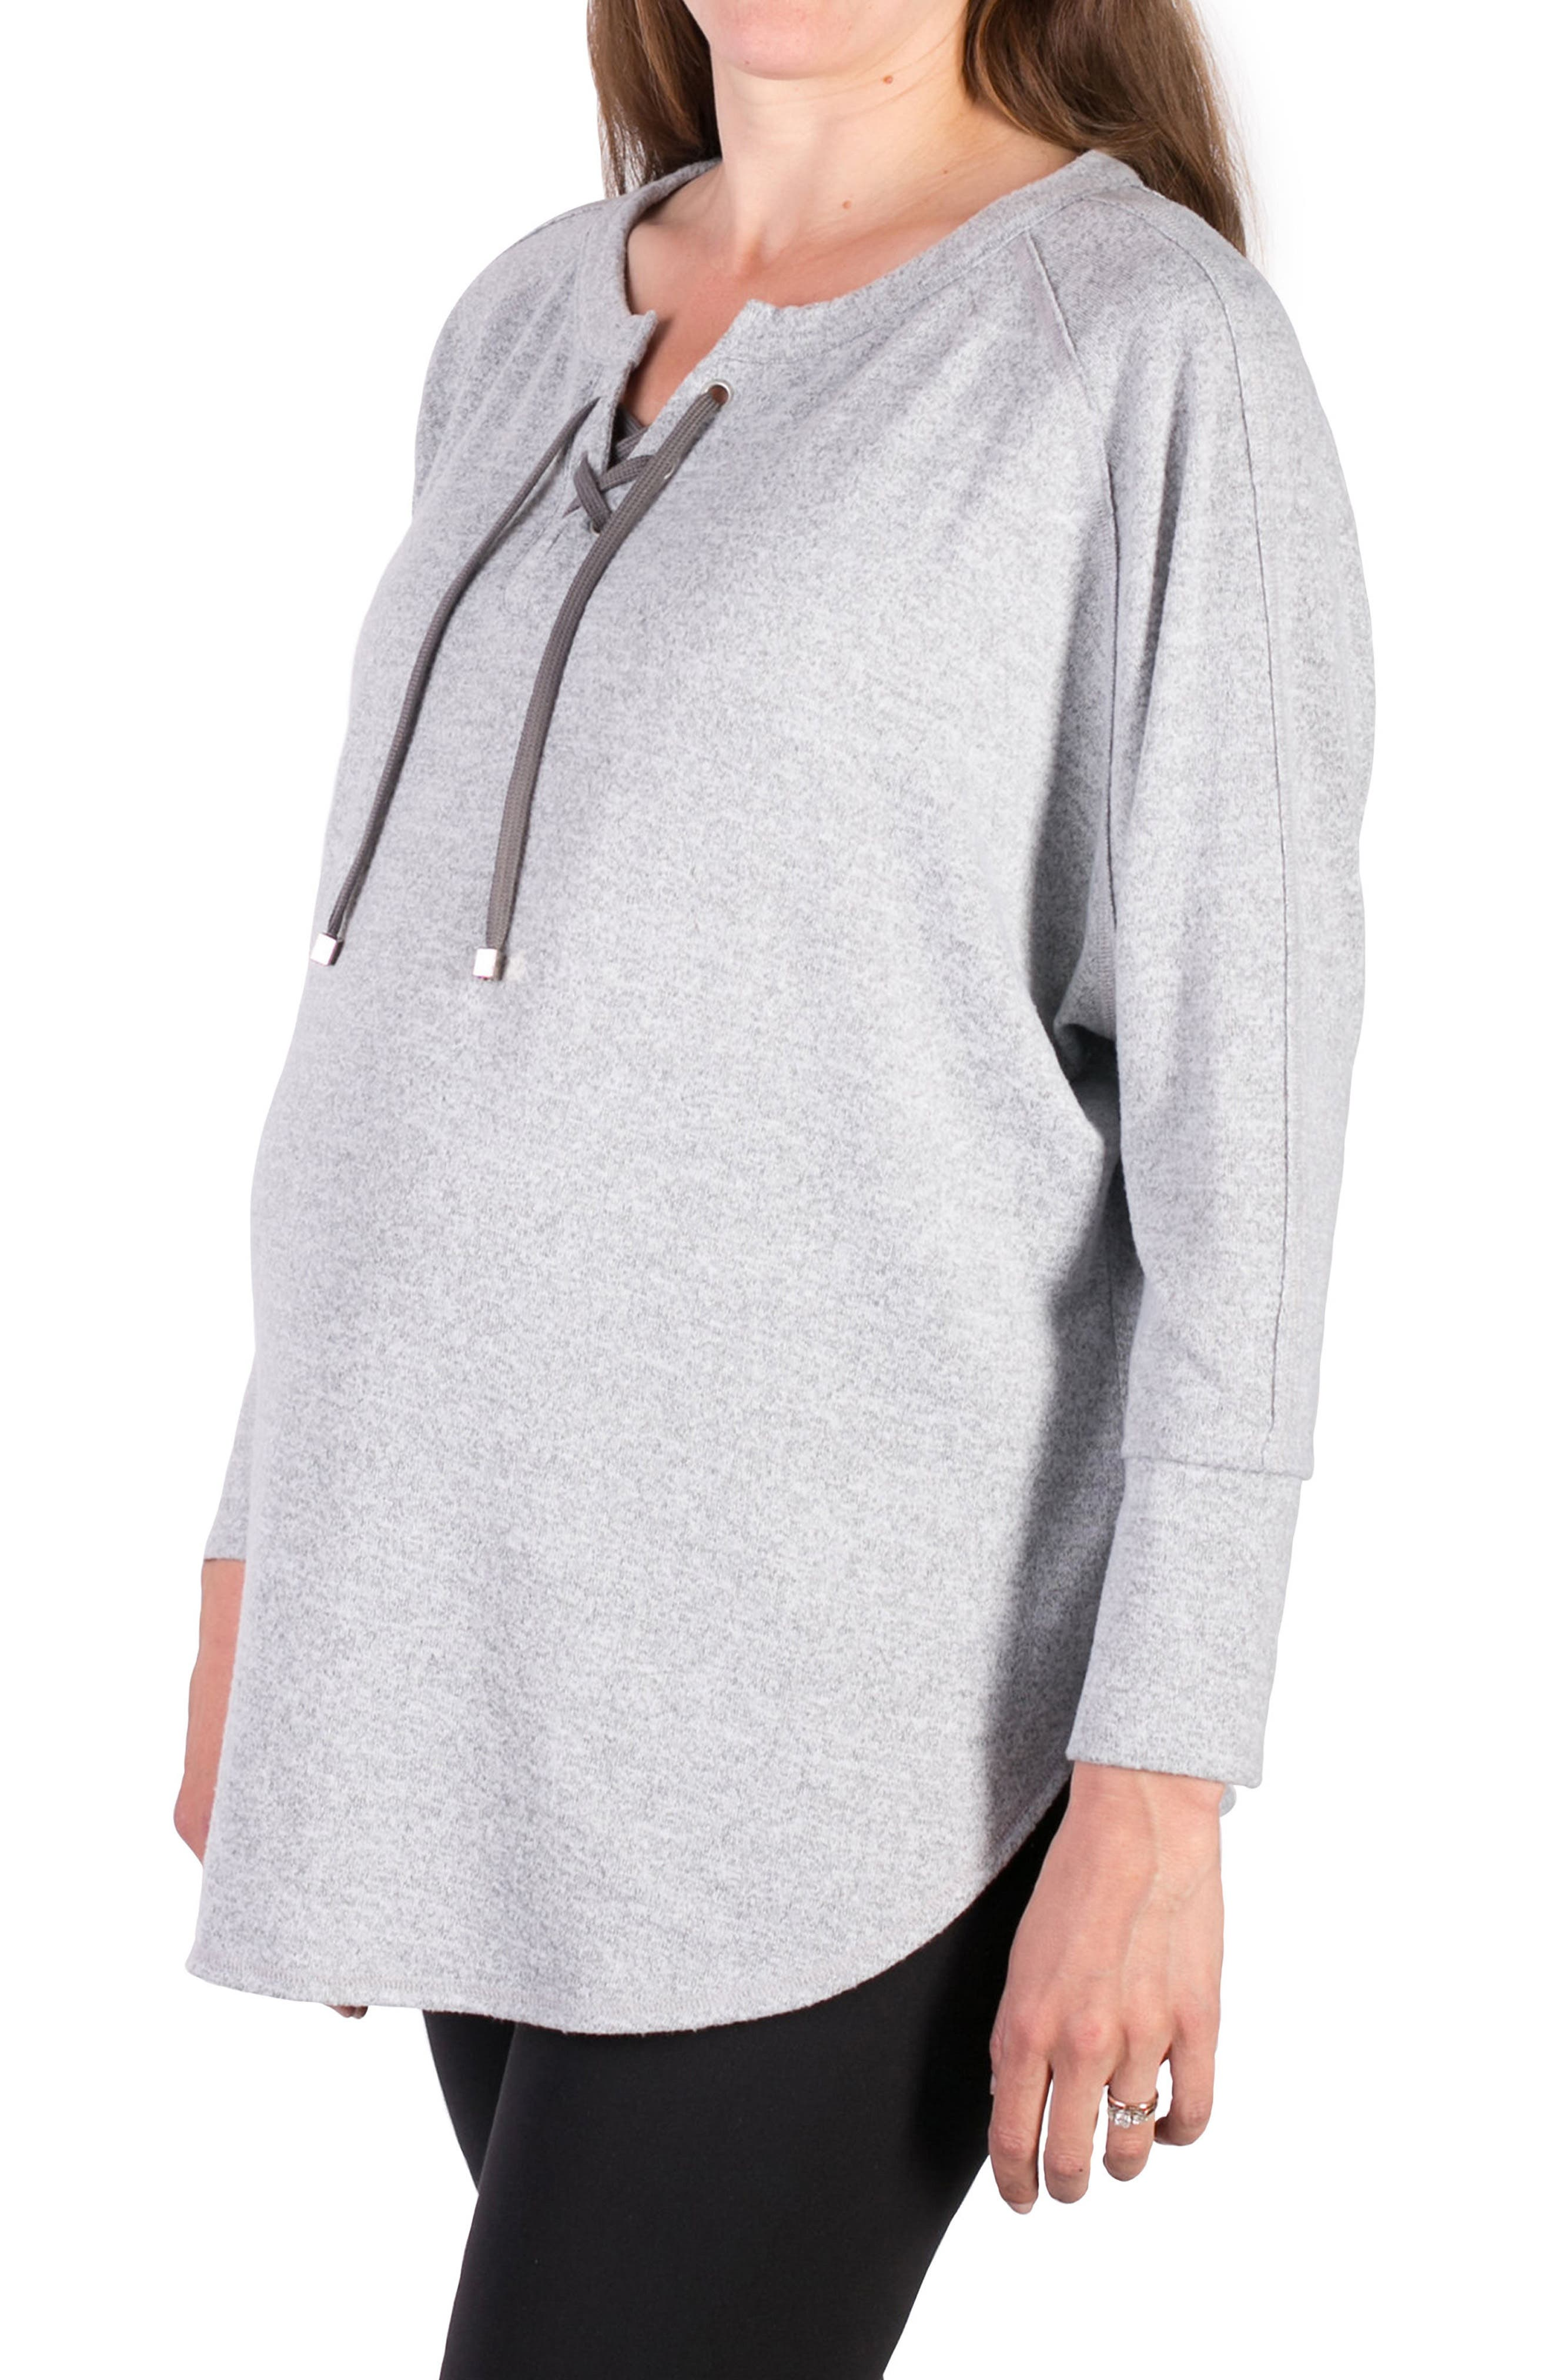 Cocoon Lace-Up Maternity Top,                             Alternate thumbnail 2, color,                             LIGHT HEATHER GREY